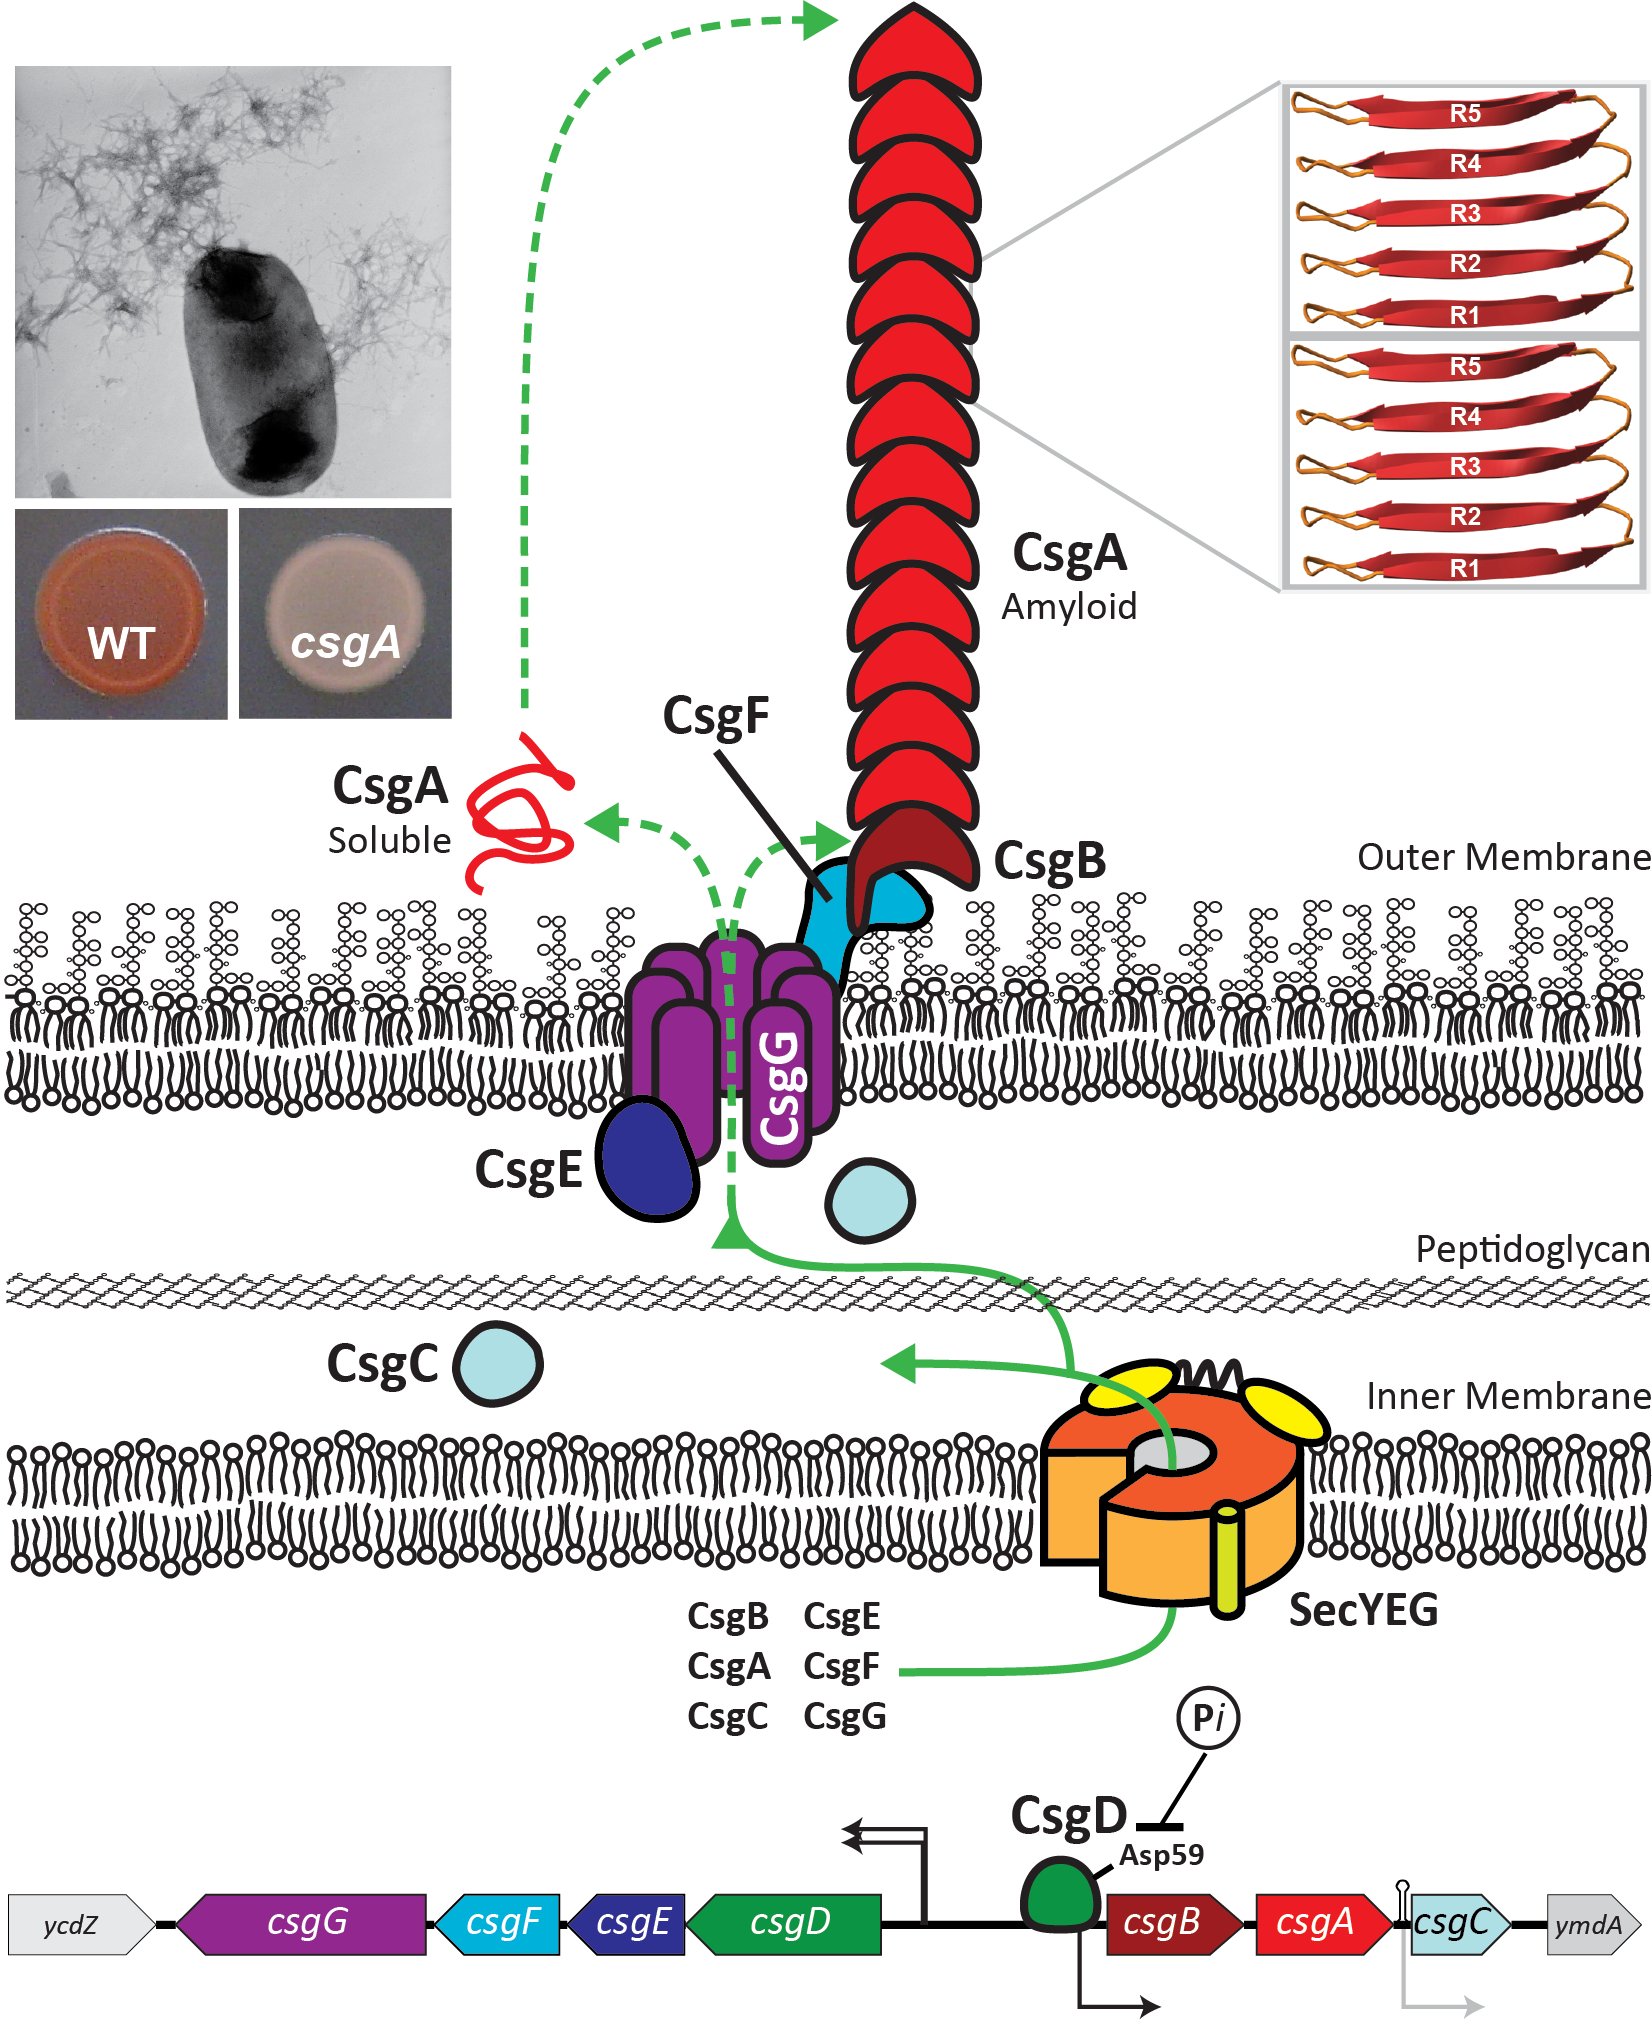 Model of curli biogenesis Excluding CsgD, the master curli regulator, all Csg proteins have Sec-dependent signal sequences allowing their secretion into the periplasm. The lipoprotein CsgG forms a pore like structure in the outer membrane. The major subunit protein CsgA and the nucleator CsgB are secreted to the cell surface in a CsgG and CsgE-dependent fashion. CsgF associates with the outer membrane and is required for cell association of the minor curli fiber subunit CsgB. Situated at the cell surface, CsgB nucleates soluble, unstructured CsgA into a highly ordered amyloid fiber. Curli production can be visualized by Congo red binding which is absent in a csgA mutant and by transmission electron microscopy (left inserts). Also shown are two CsgA subunits interacting in a cross-β conformation with the R1-R5 interaction depicted.